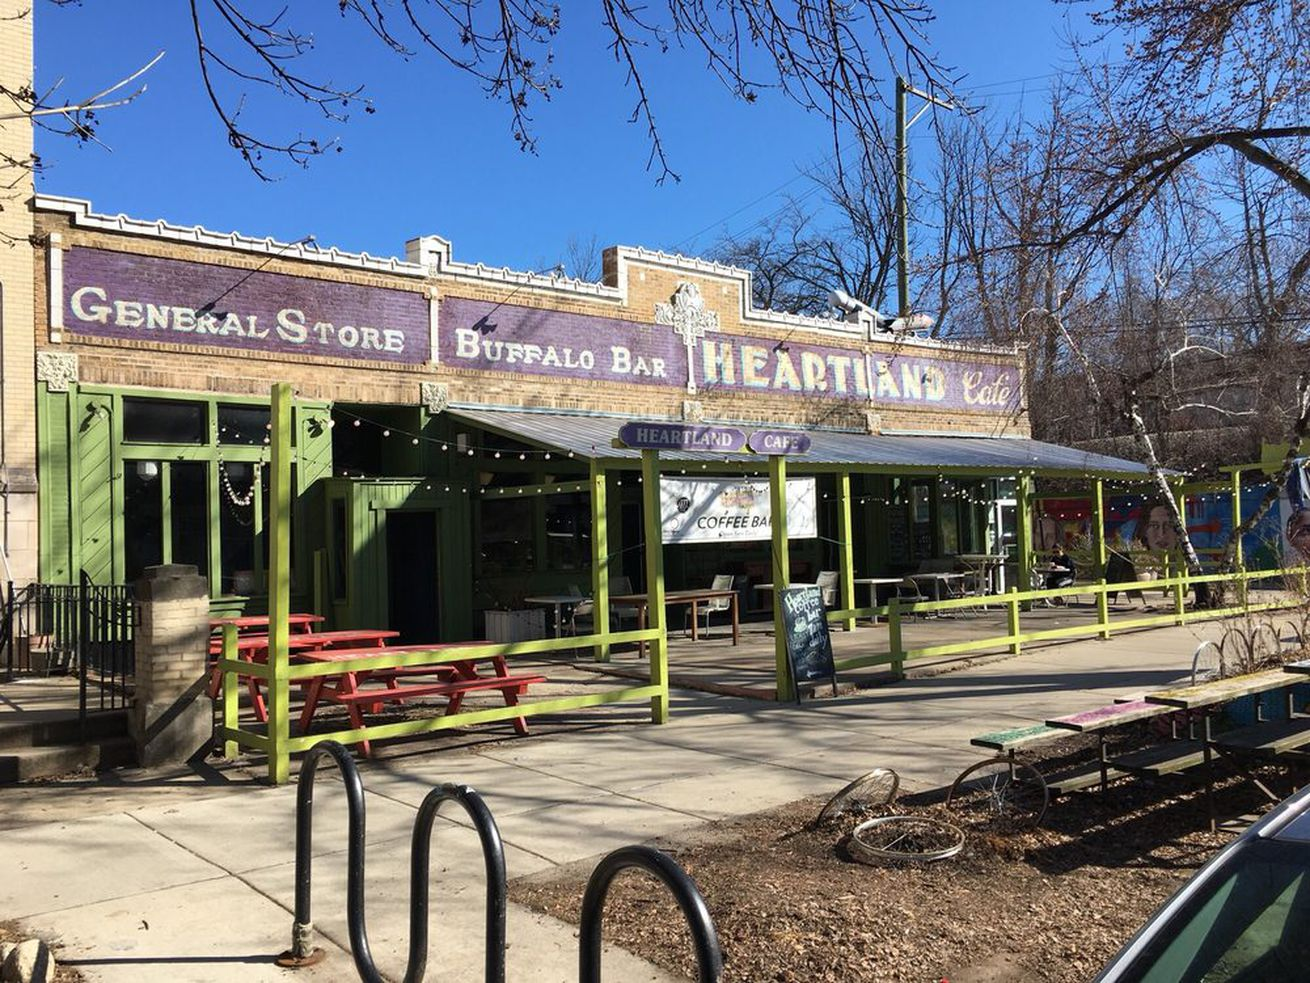 This iteration of Heartland Cafe is going away